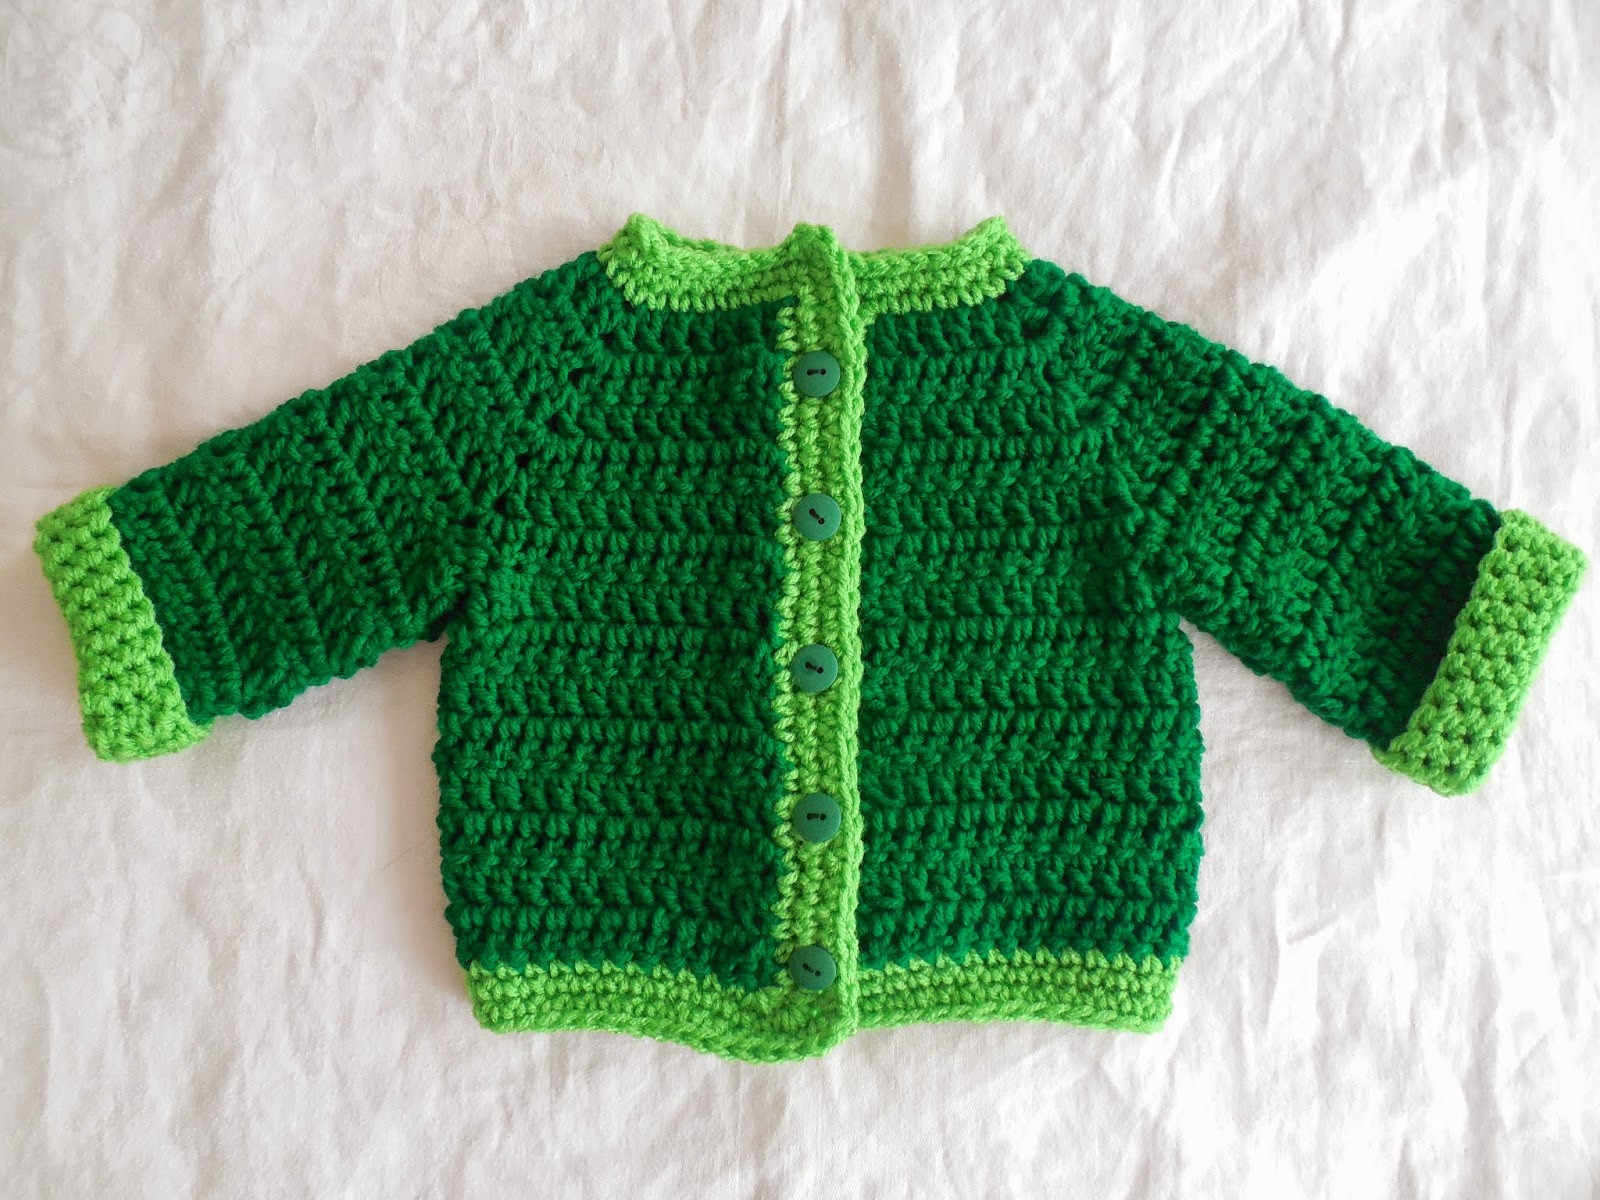 Unique Britteny F the Hook Two tone Sweater Pattern Pdf Free Crochet toddler Sweater Patterns Of Charming 50 Models Free Crochet toddler Sweater Patterns